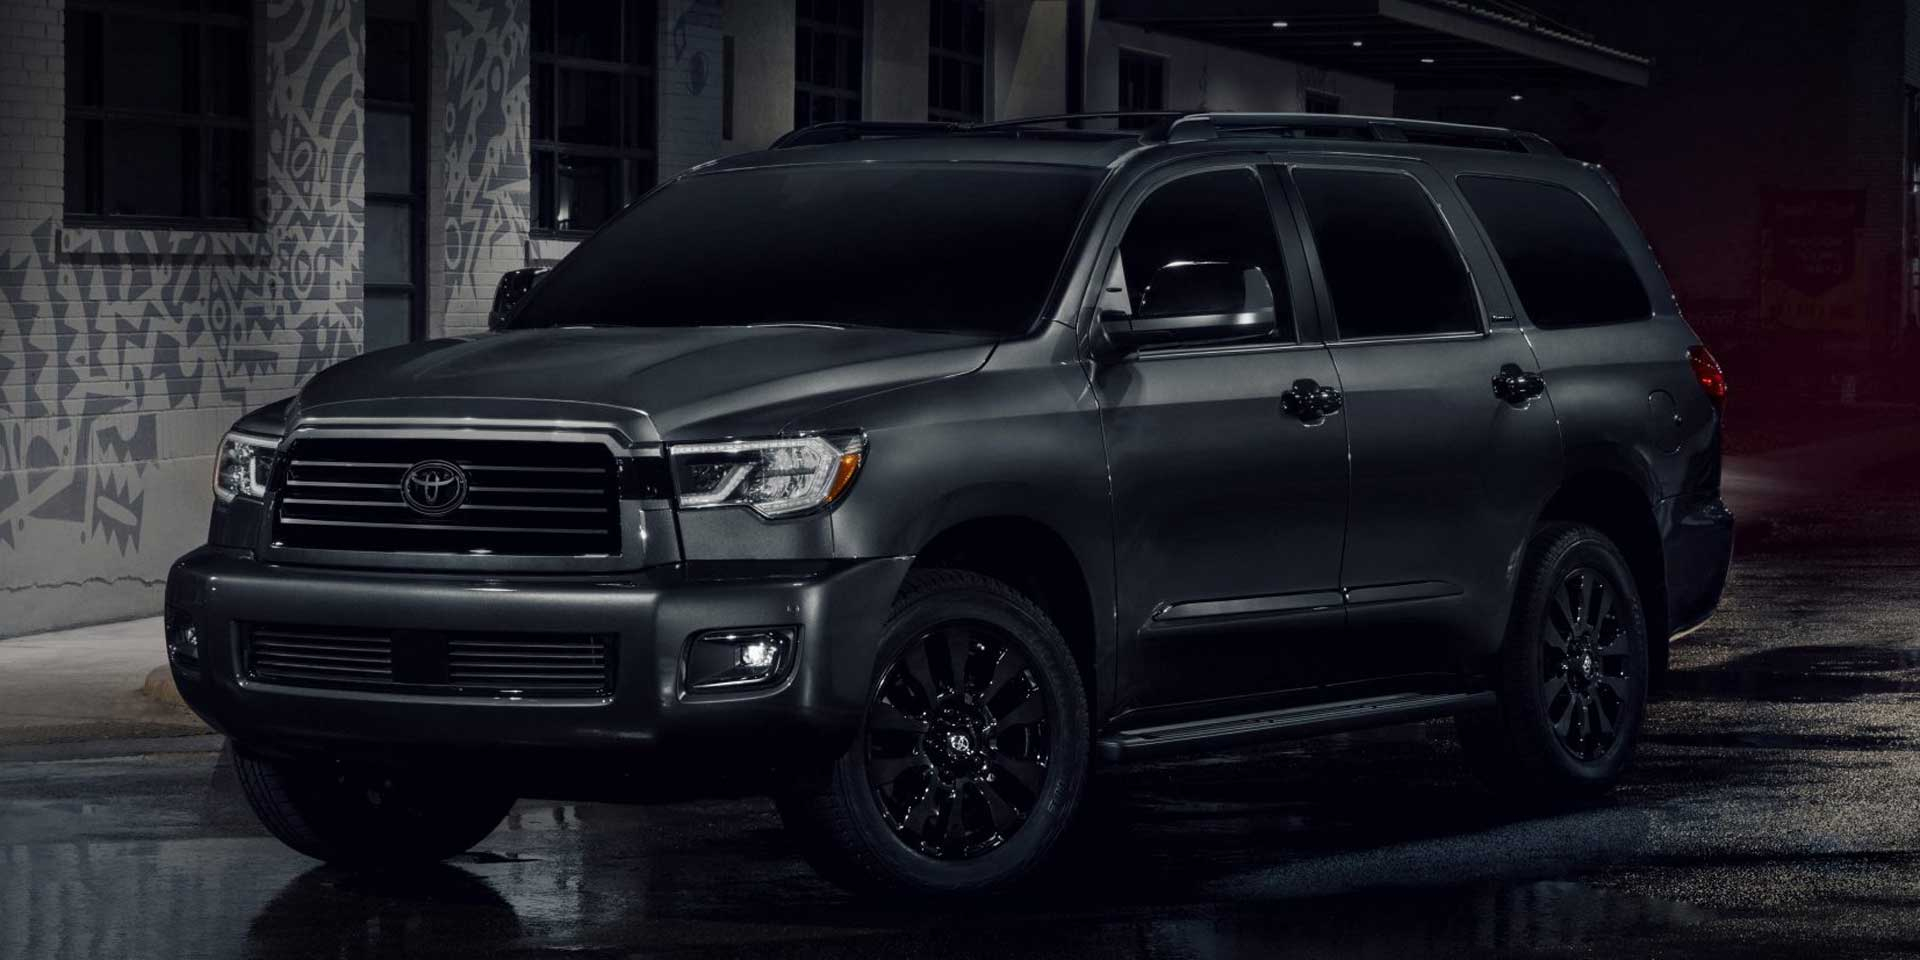 2021 - Toyota - Sequoia - Vehicles On Display | Chicago Auto 2021 Chevy Spark Safety, Towing Capacity, Tires